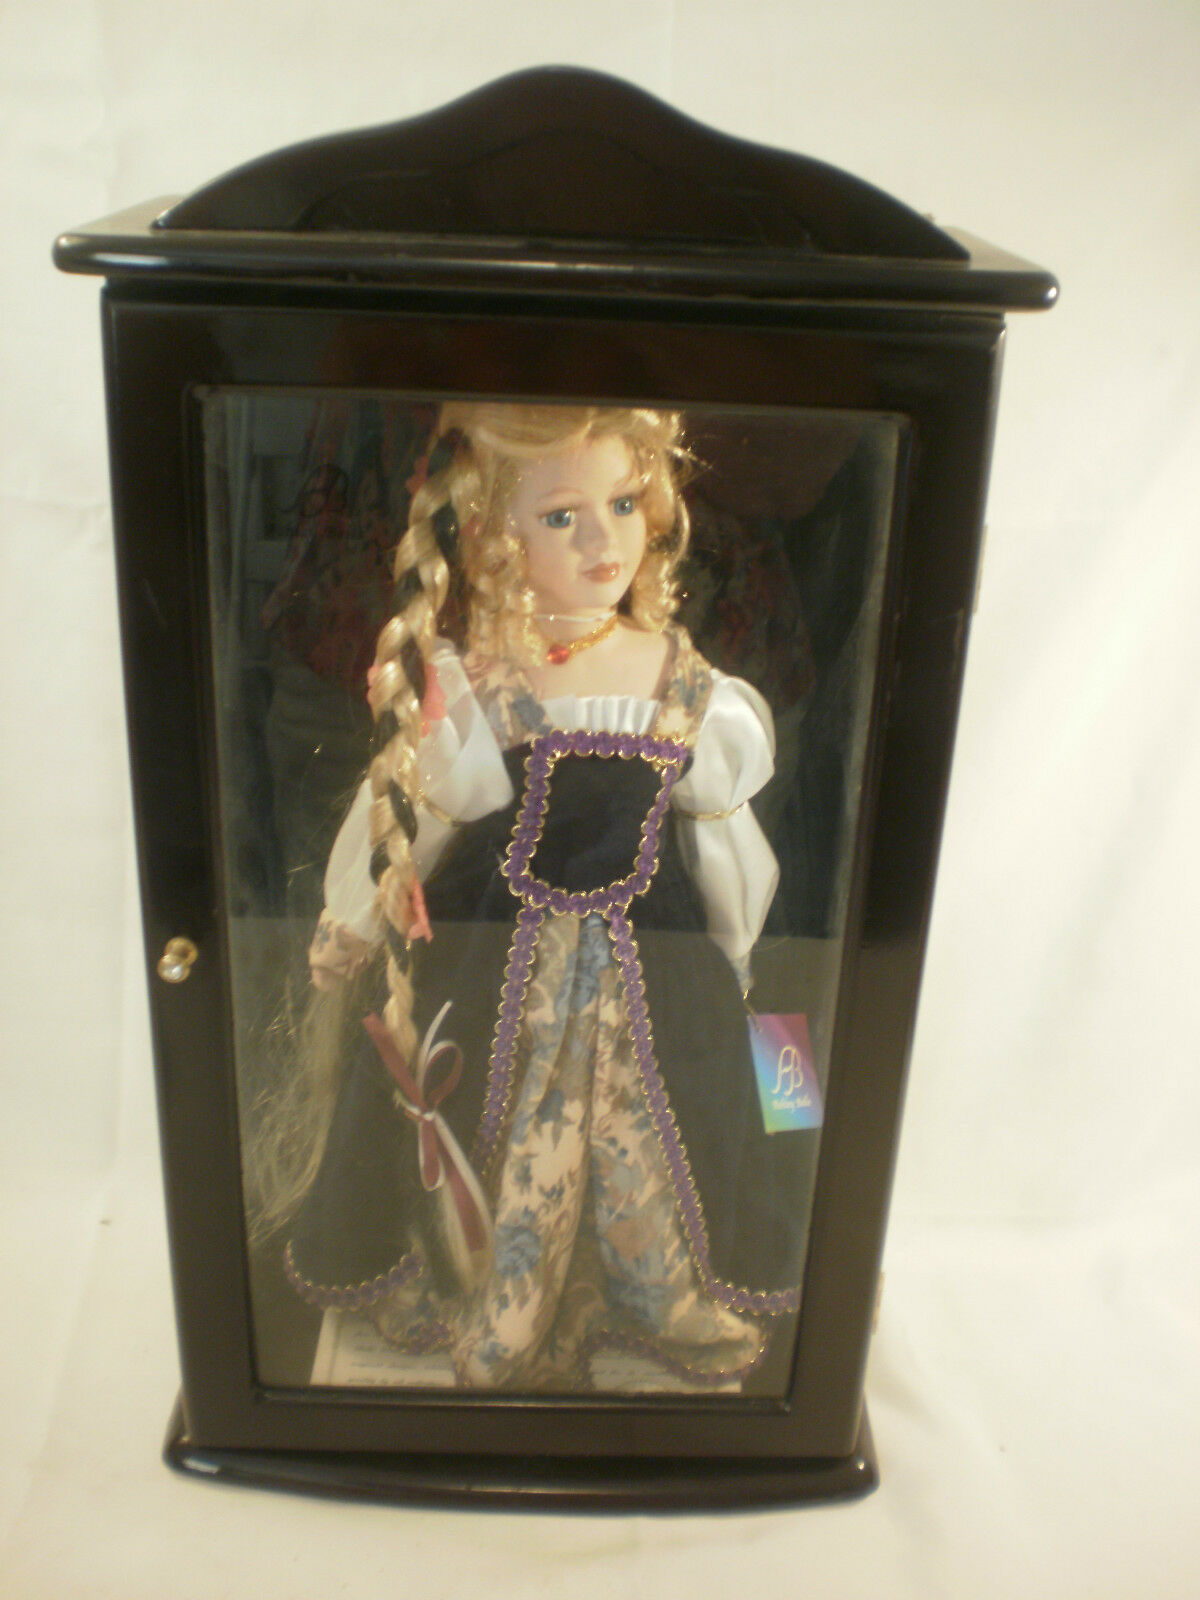 Ashley Belle Collectibles bambola In Wooden Case  Holly   MG651  ecco l'ultimo